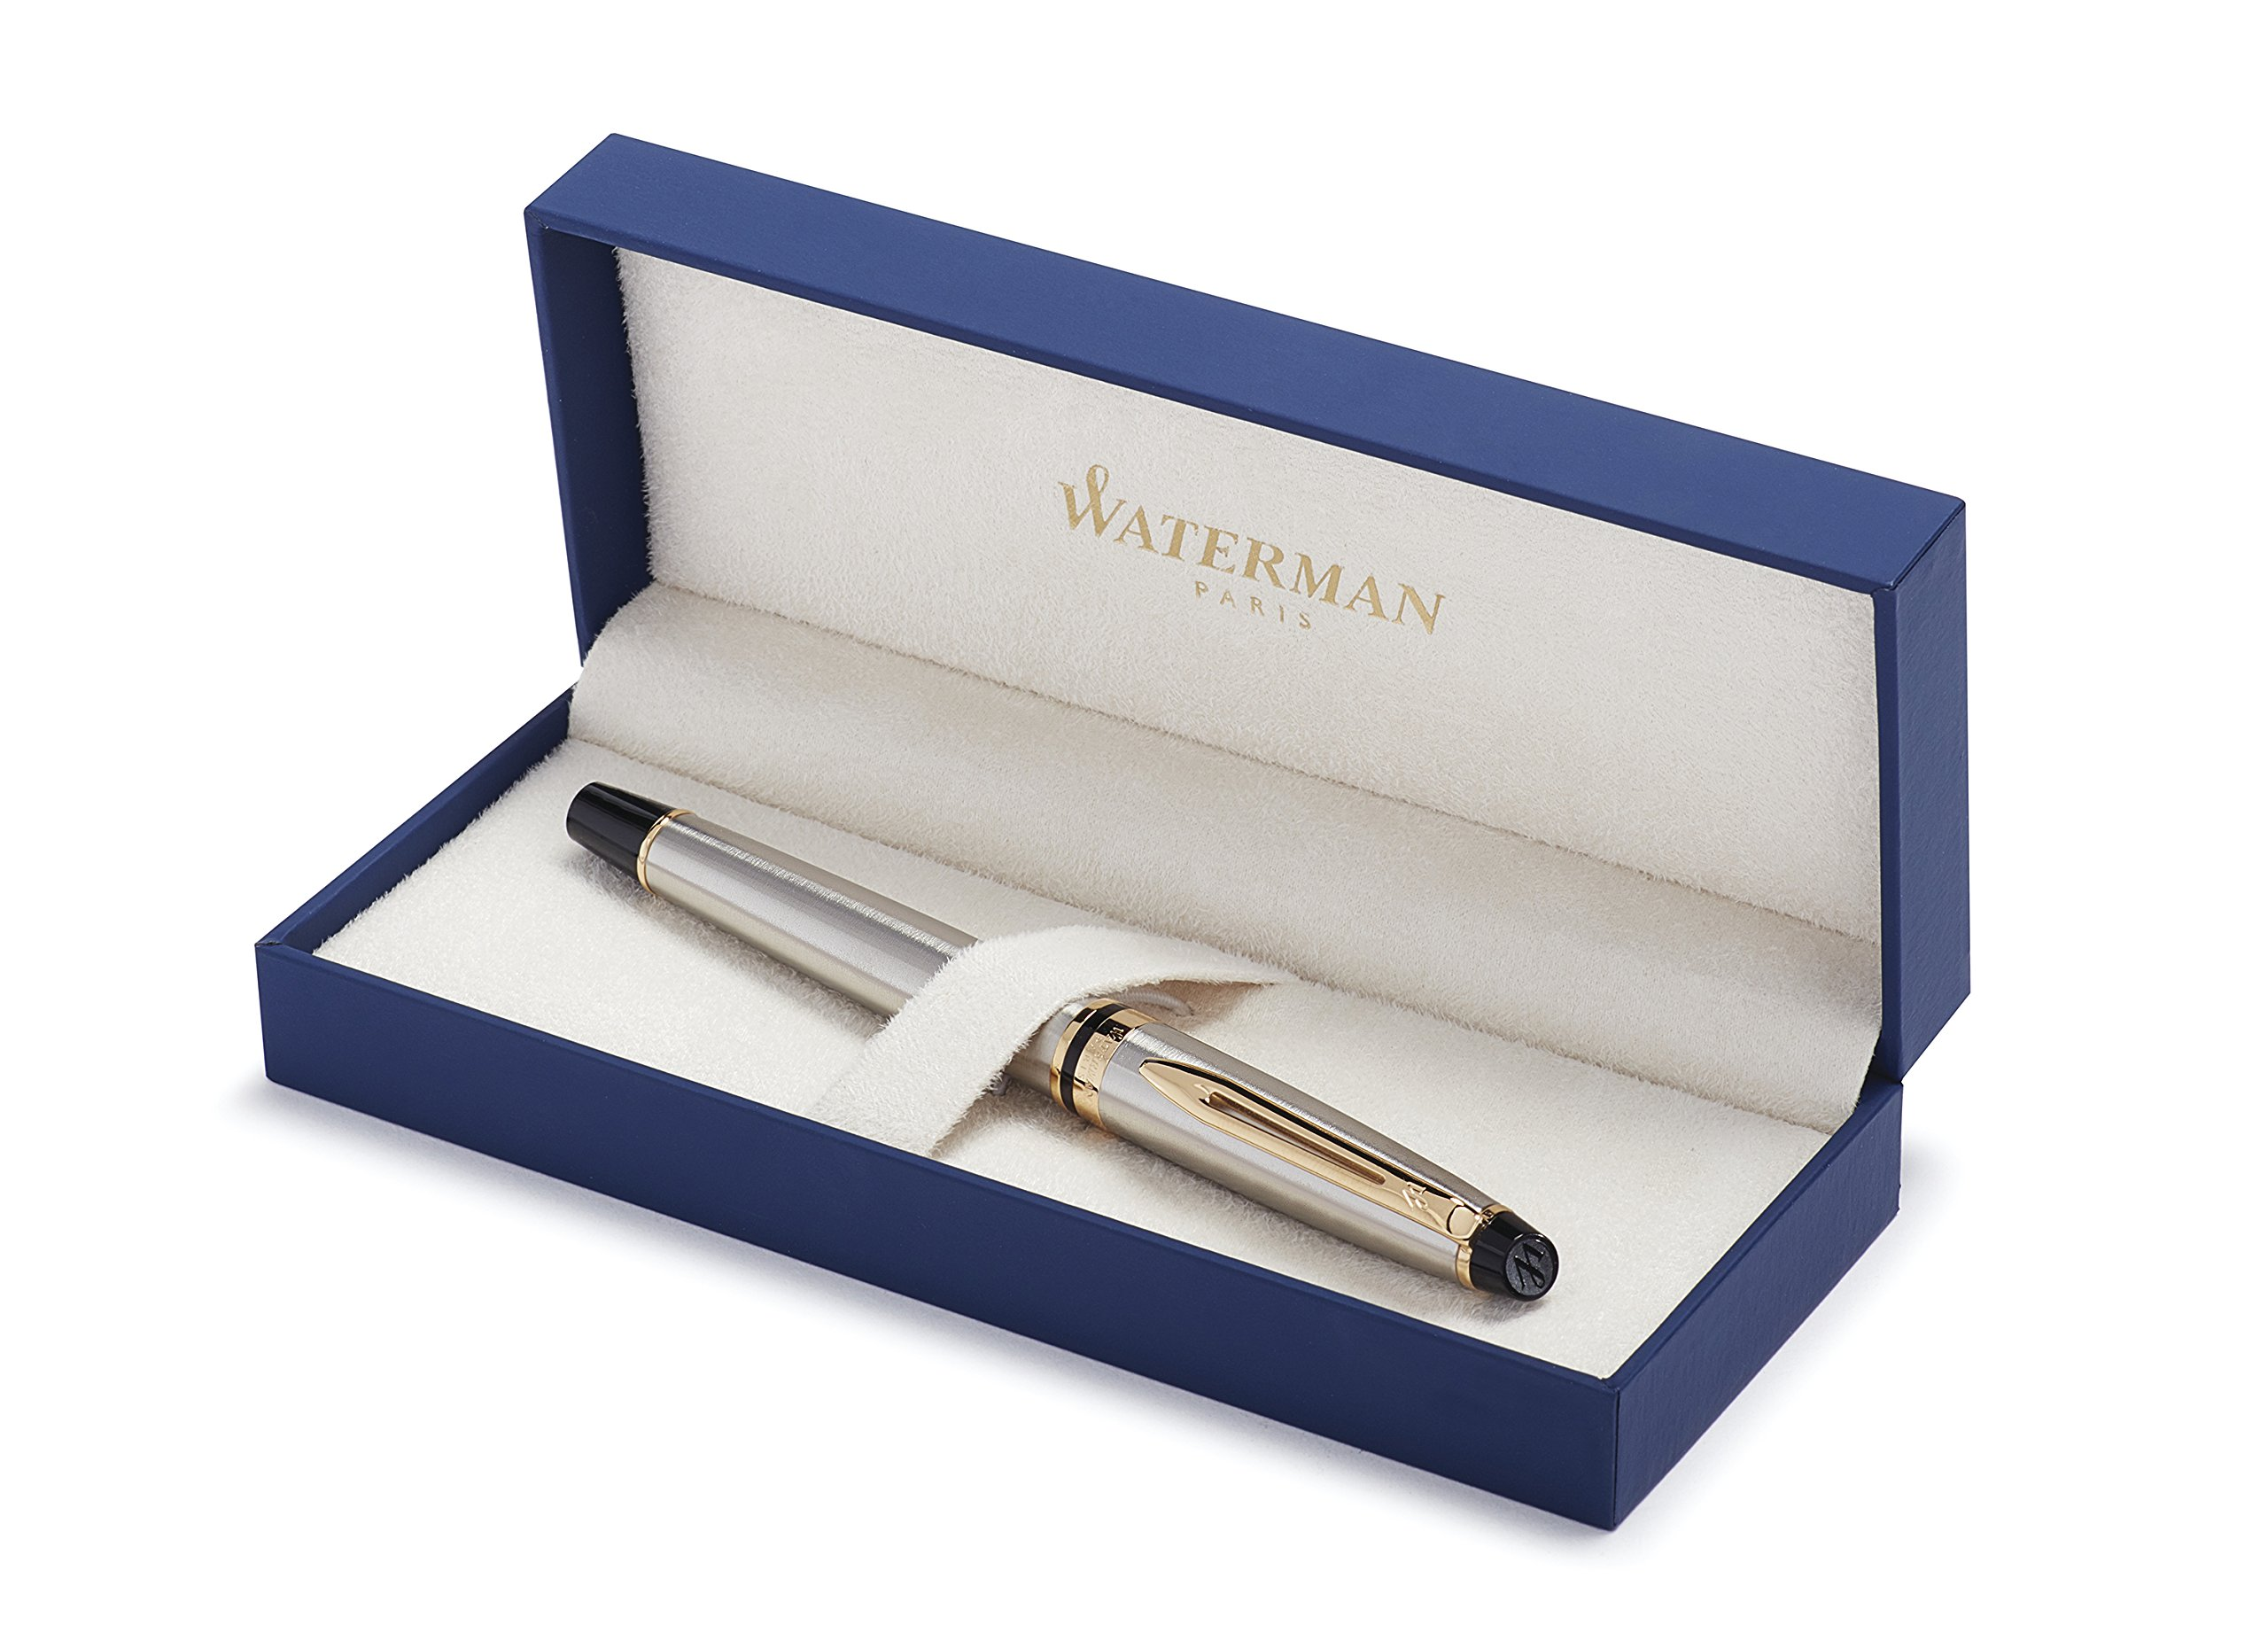 Waterman Expert Rollerball Pen, Stainless Steel with 23k Gold Trim, Fine Point with Black Ink Cartridge, Gift Box by Waterman (Image #1)